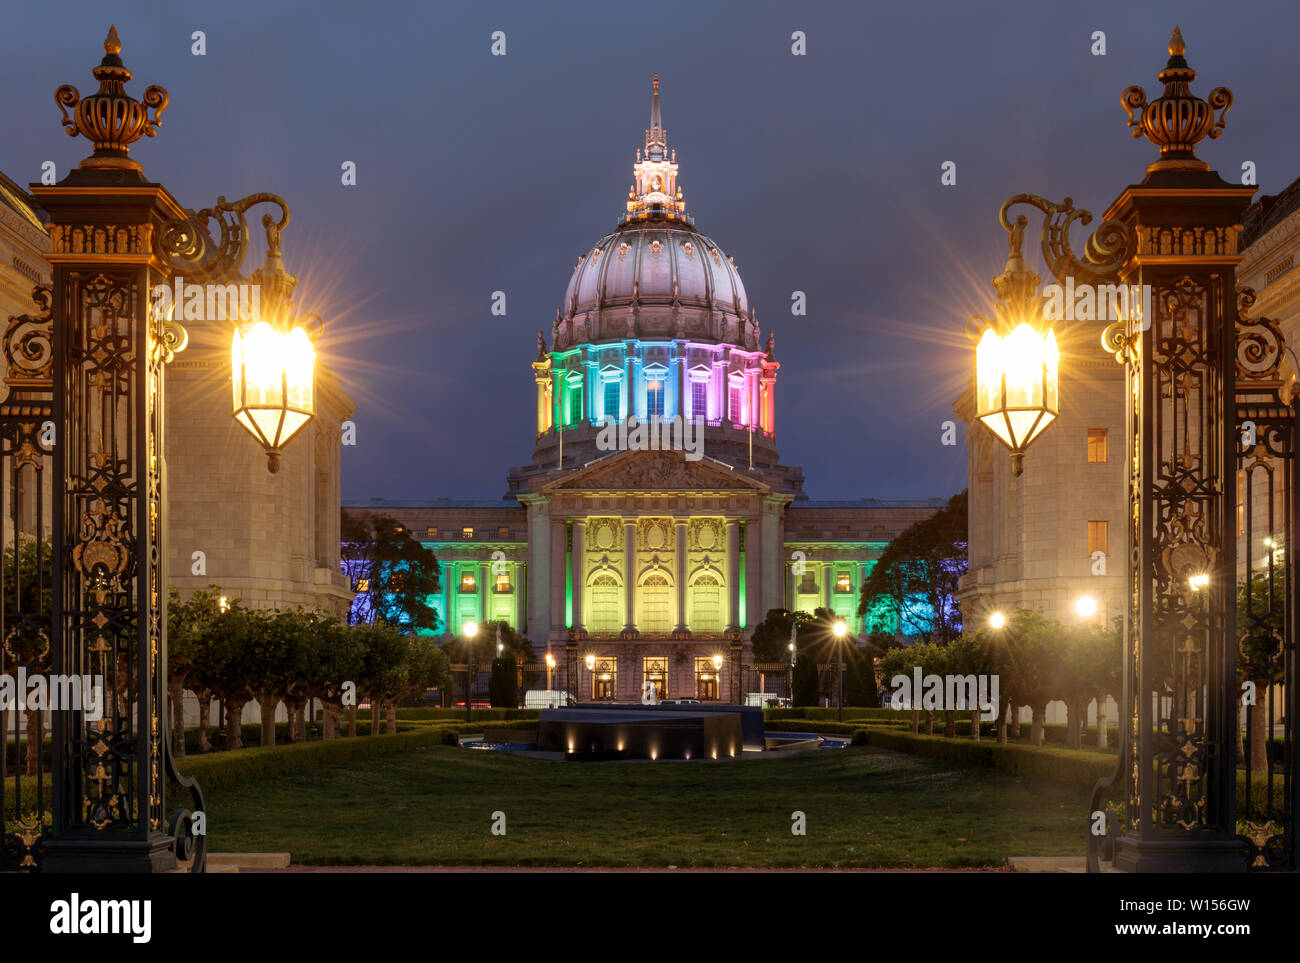 Dusk over San Francisco City Hall illuminated in rainbow colors for the Pride Festival. - Stock Image